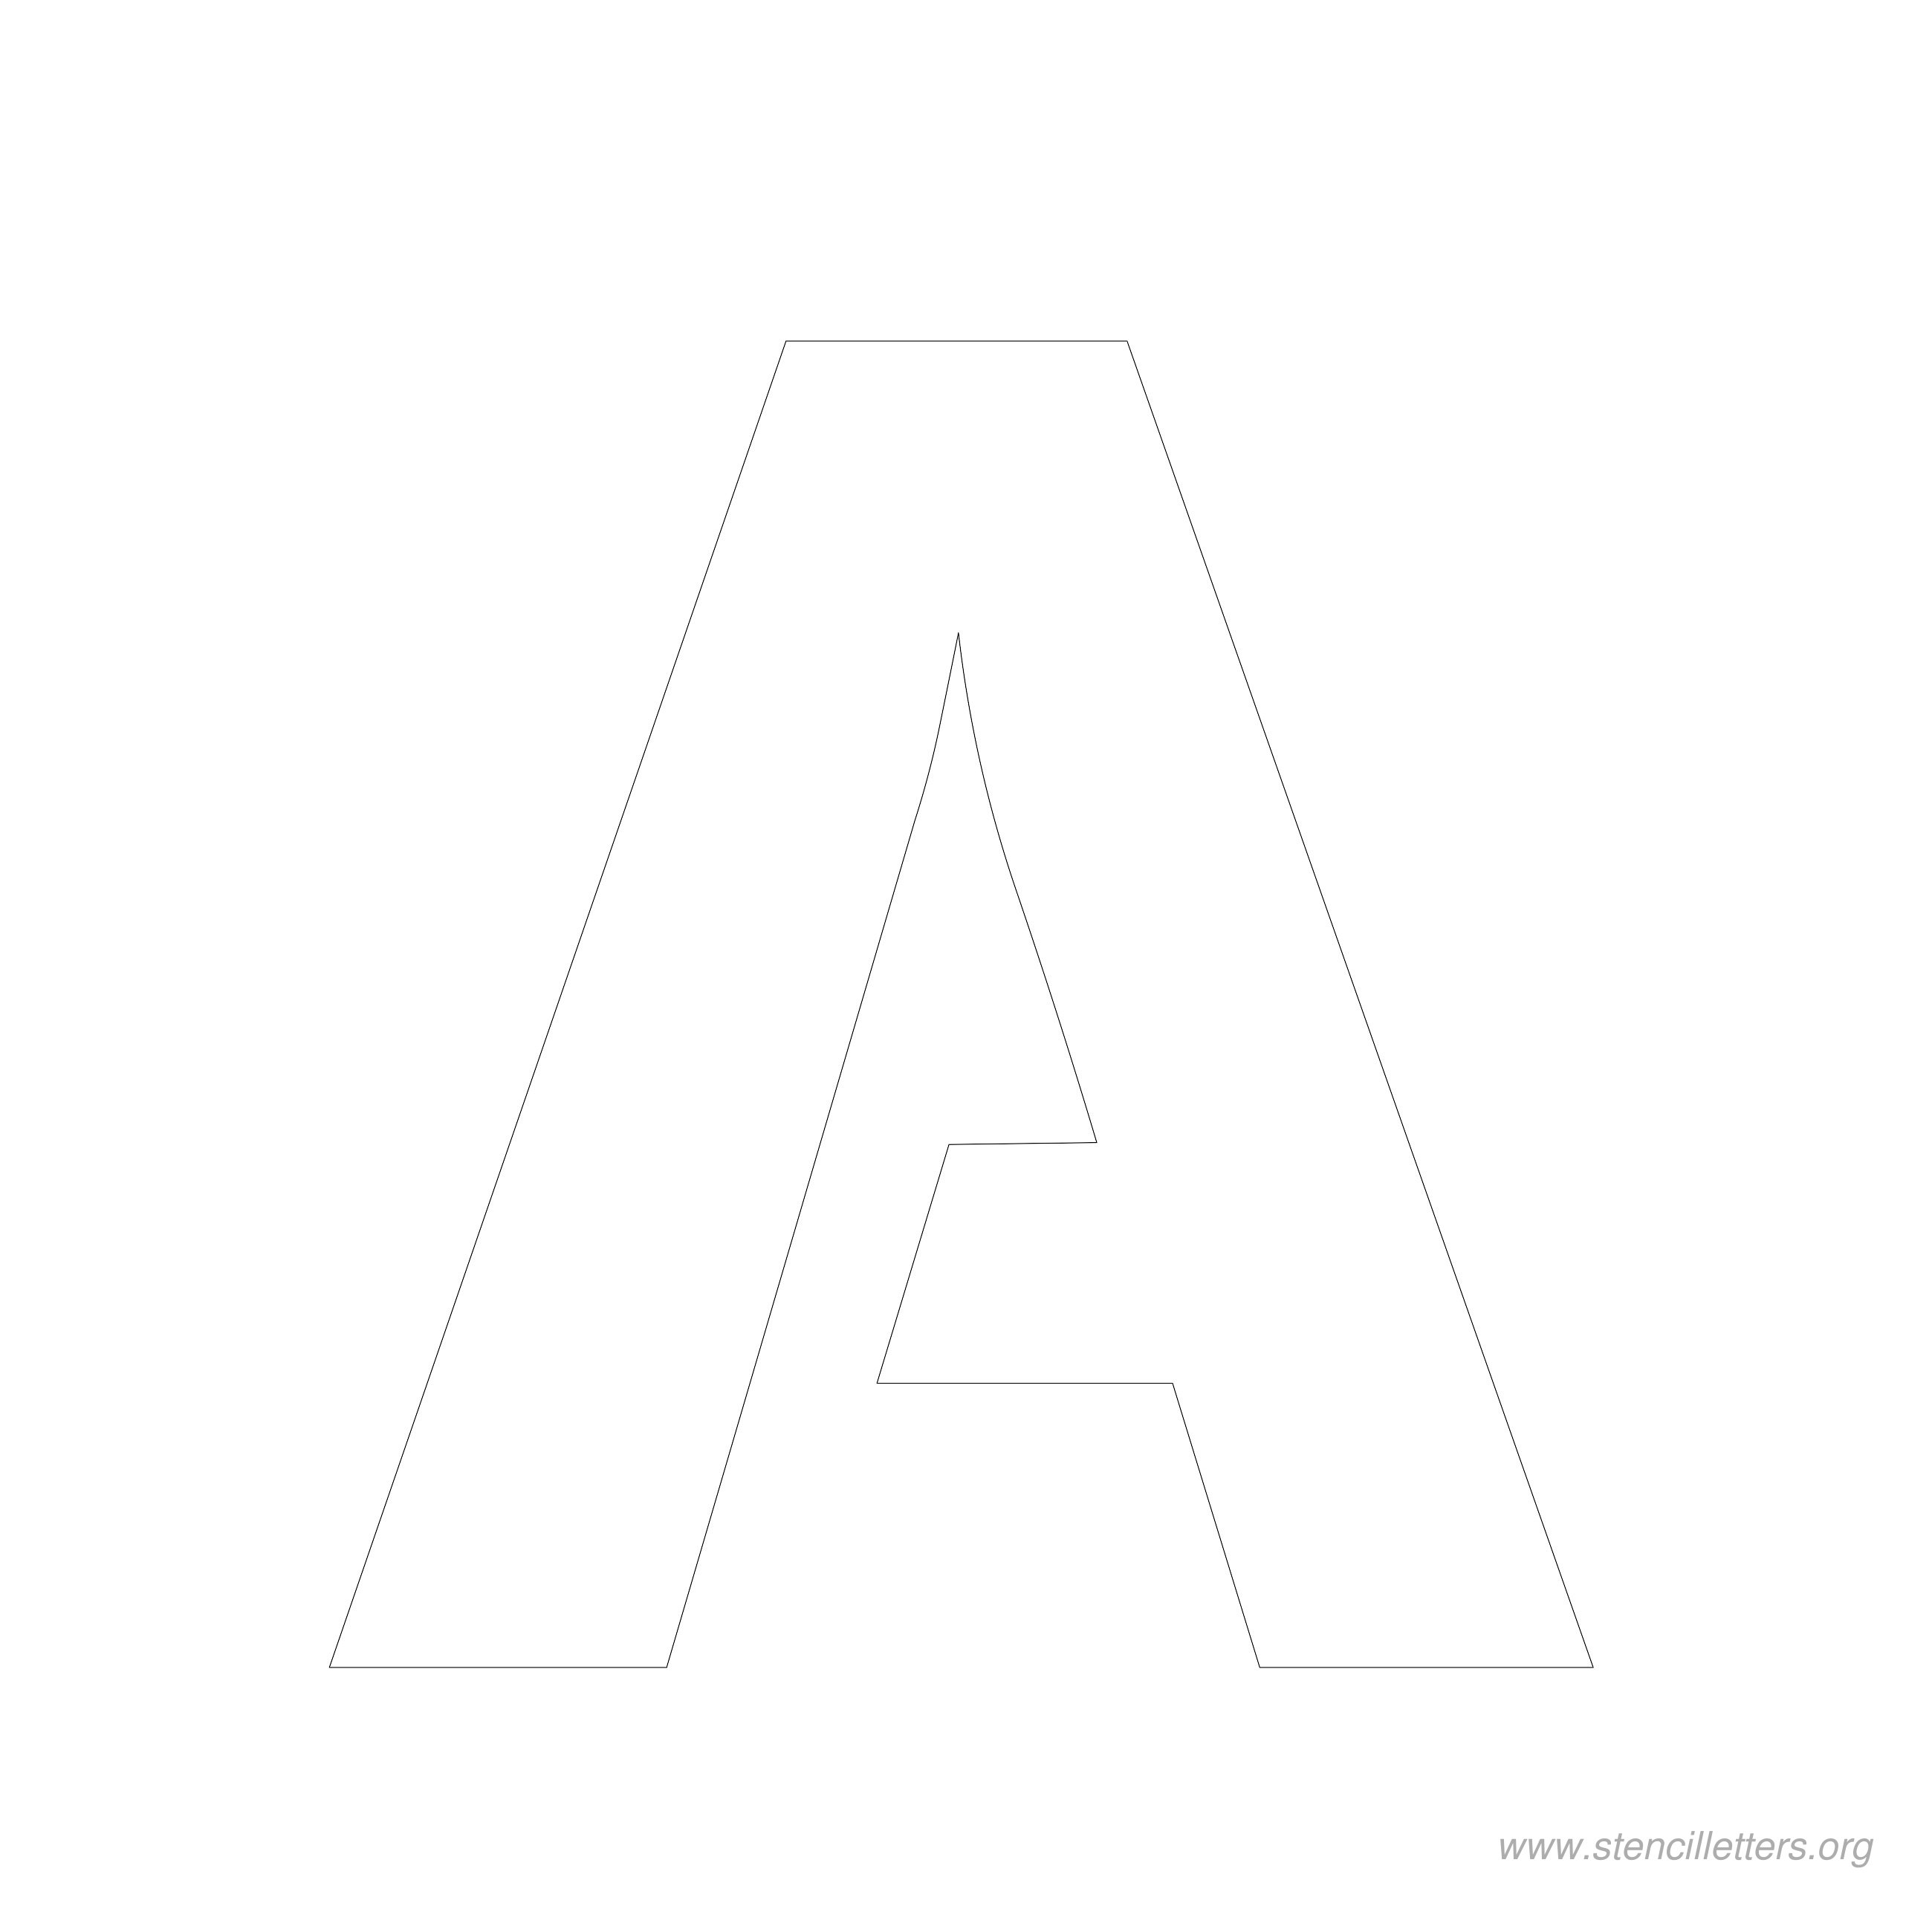 6 inch stencil letters stencil letters org 6 inch stencil letter a amipublicfo Gallery